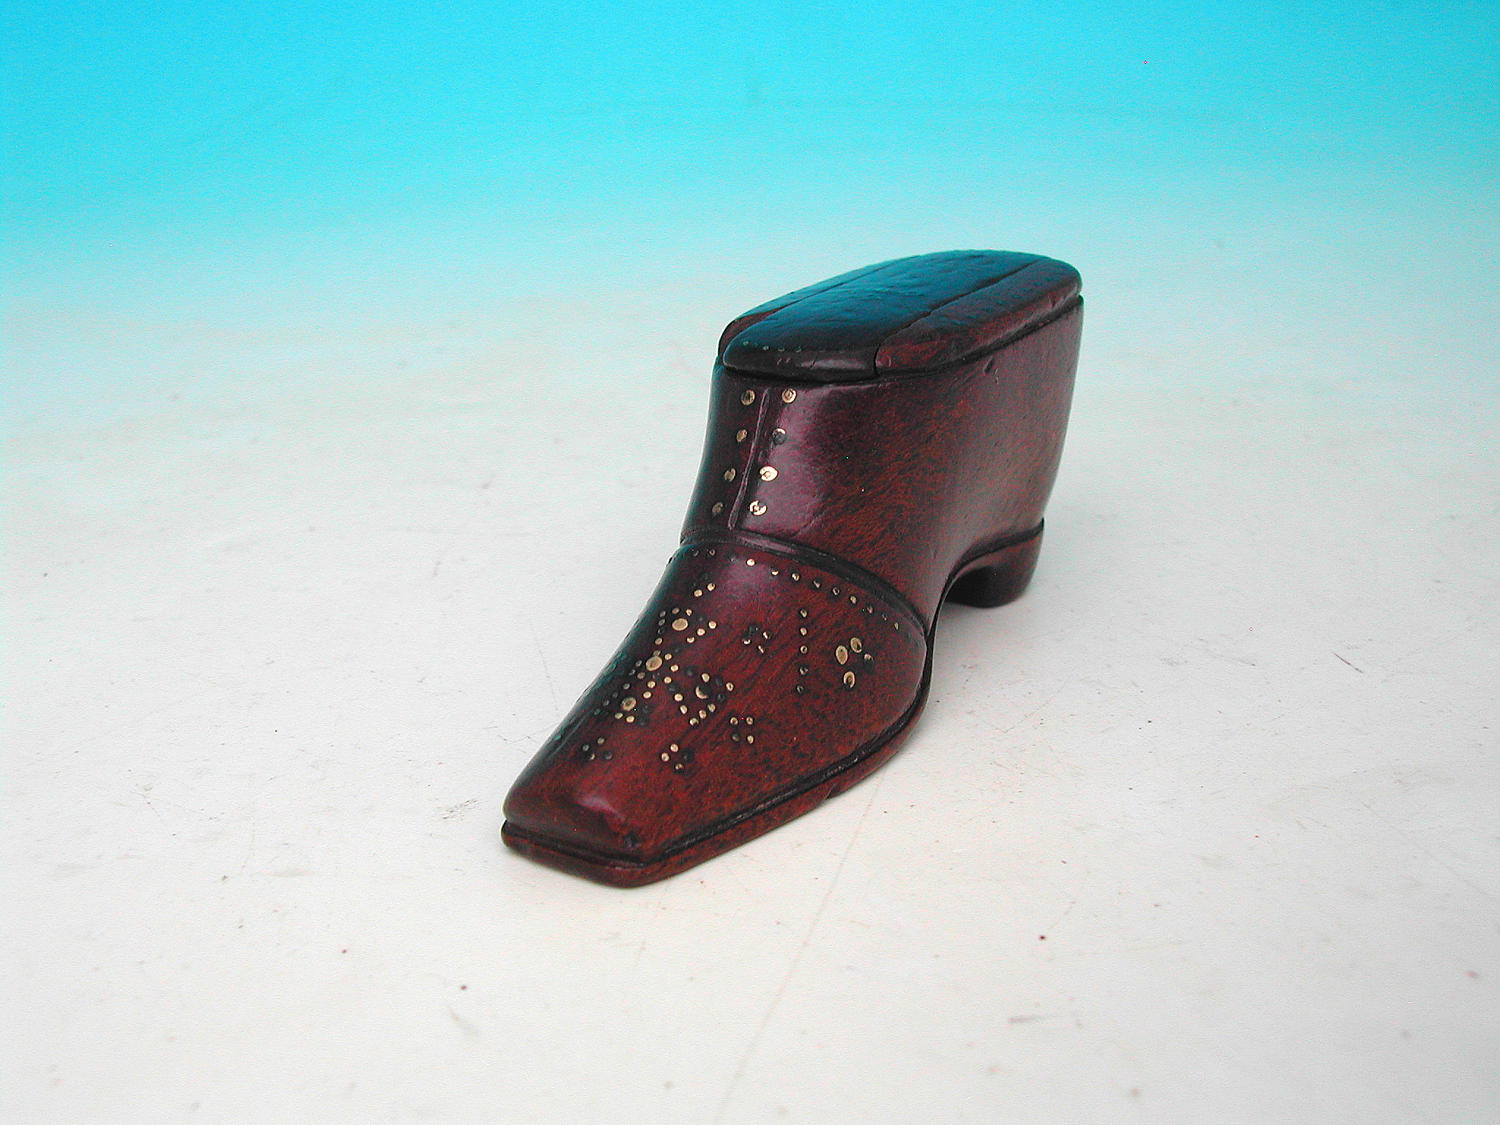 Antique 19thc Fruitwood Piquet Treen Snuff Shoe. English C1840 - 60